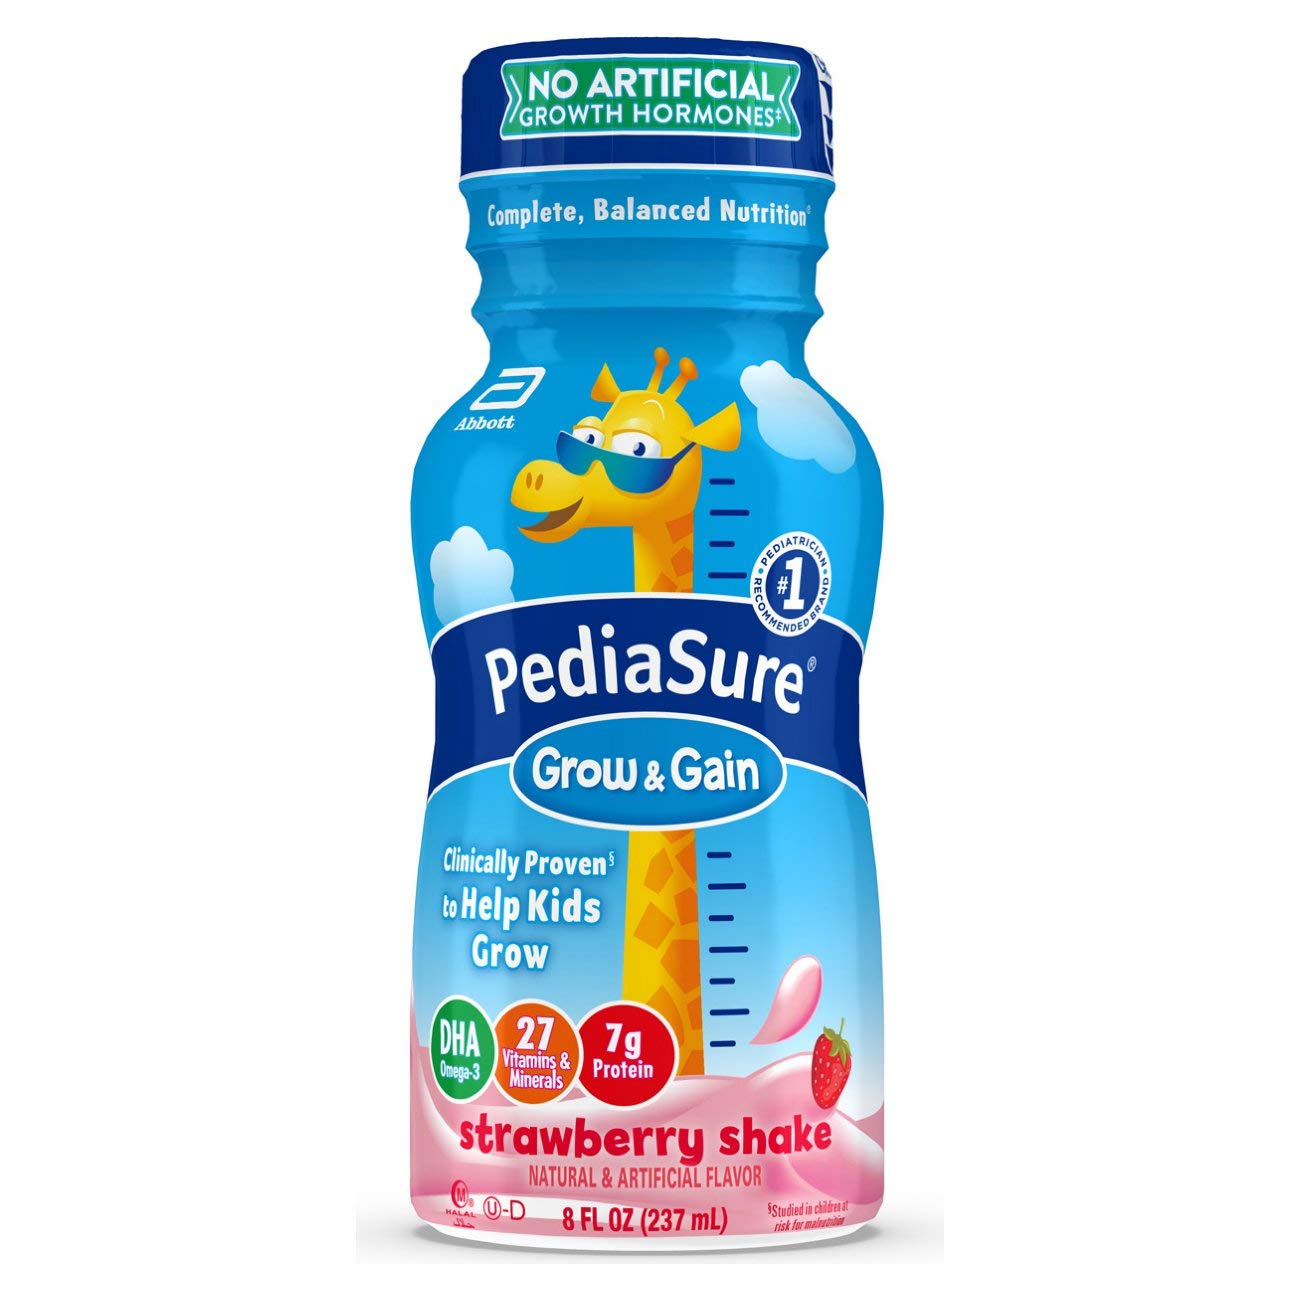 PediaSure Grow & Gain Kids Nutritional Shake, with Protein, DHA, and Vitamins & Minerals, Strawberry, 8 fl oz, 24 Count